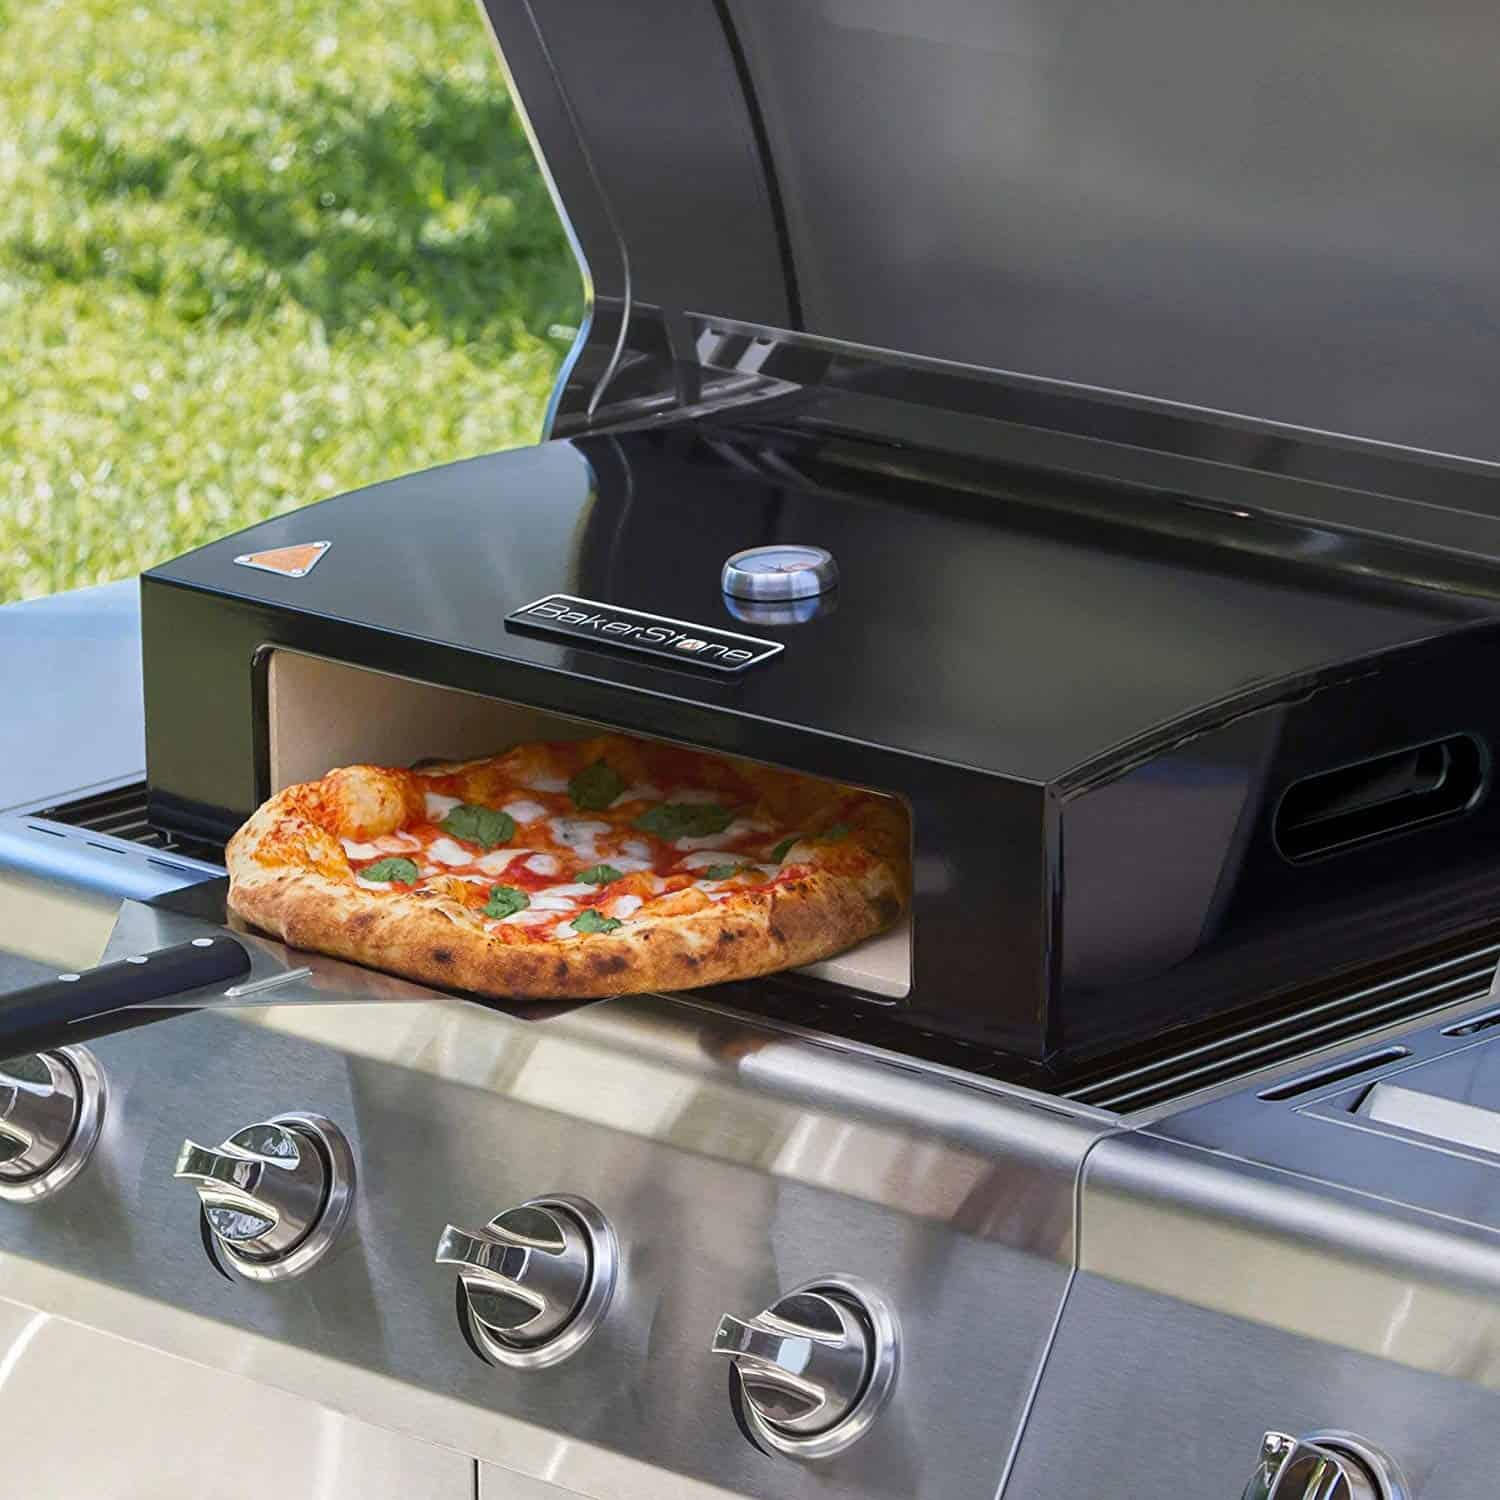 Bakerstone Pizza Oven Giveaway  U2022 Steamy Kitchen Recipes